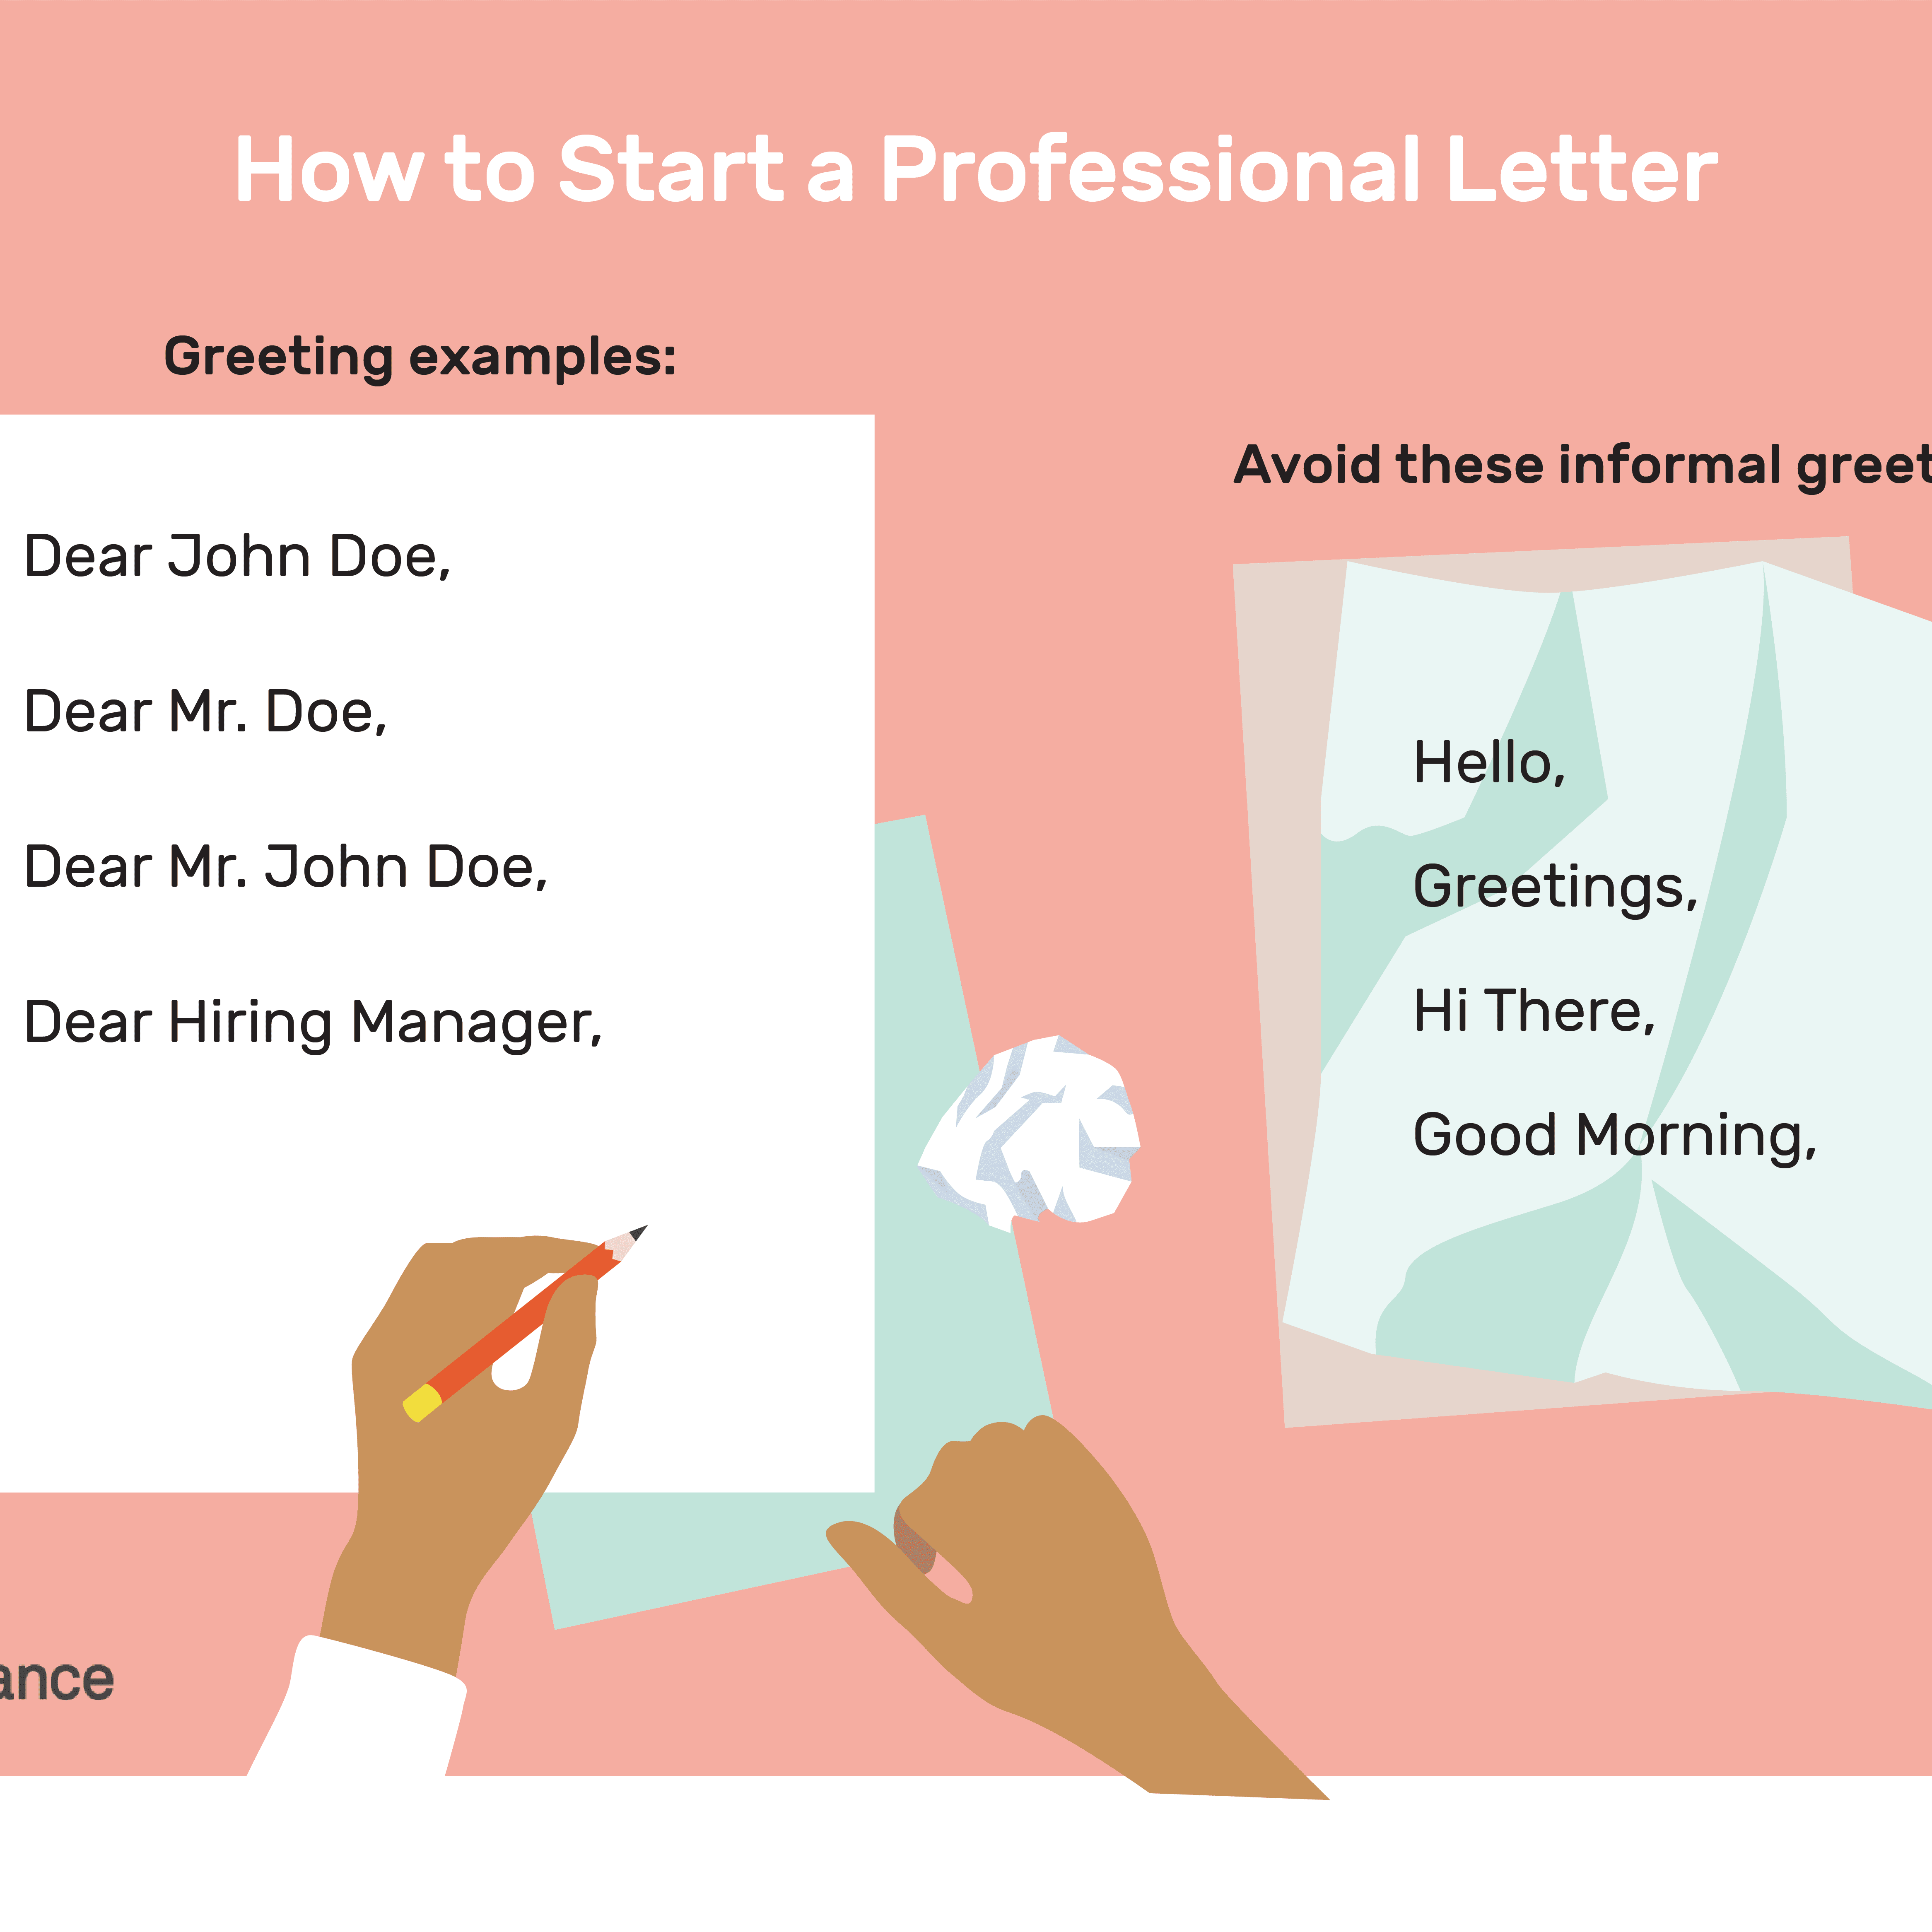 Dear In A Letter from www.thebalancecareers.com